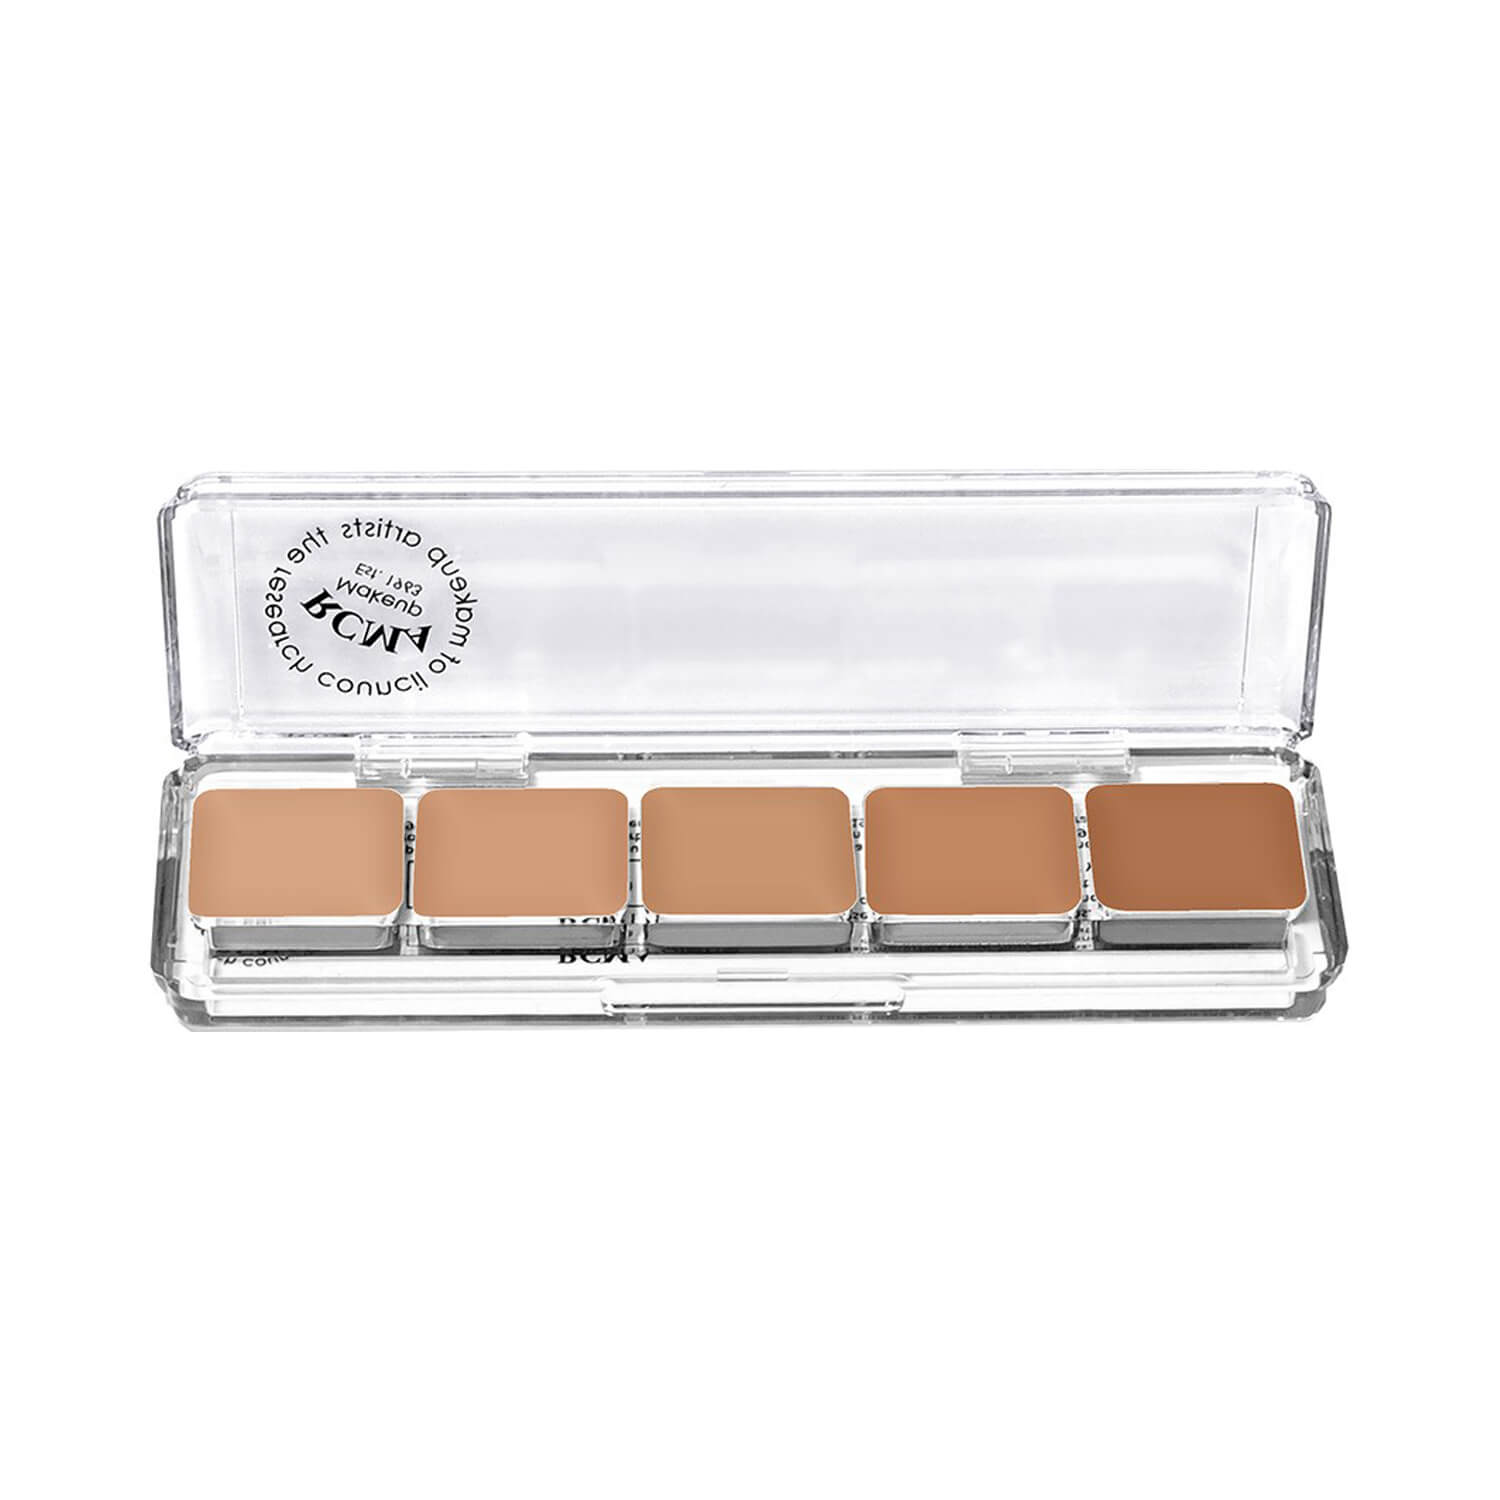 RCMA KO Series 5 Part Palette